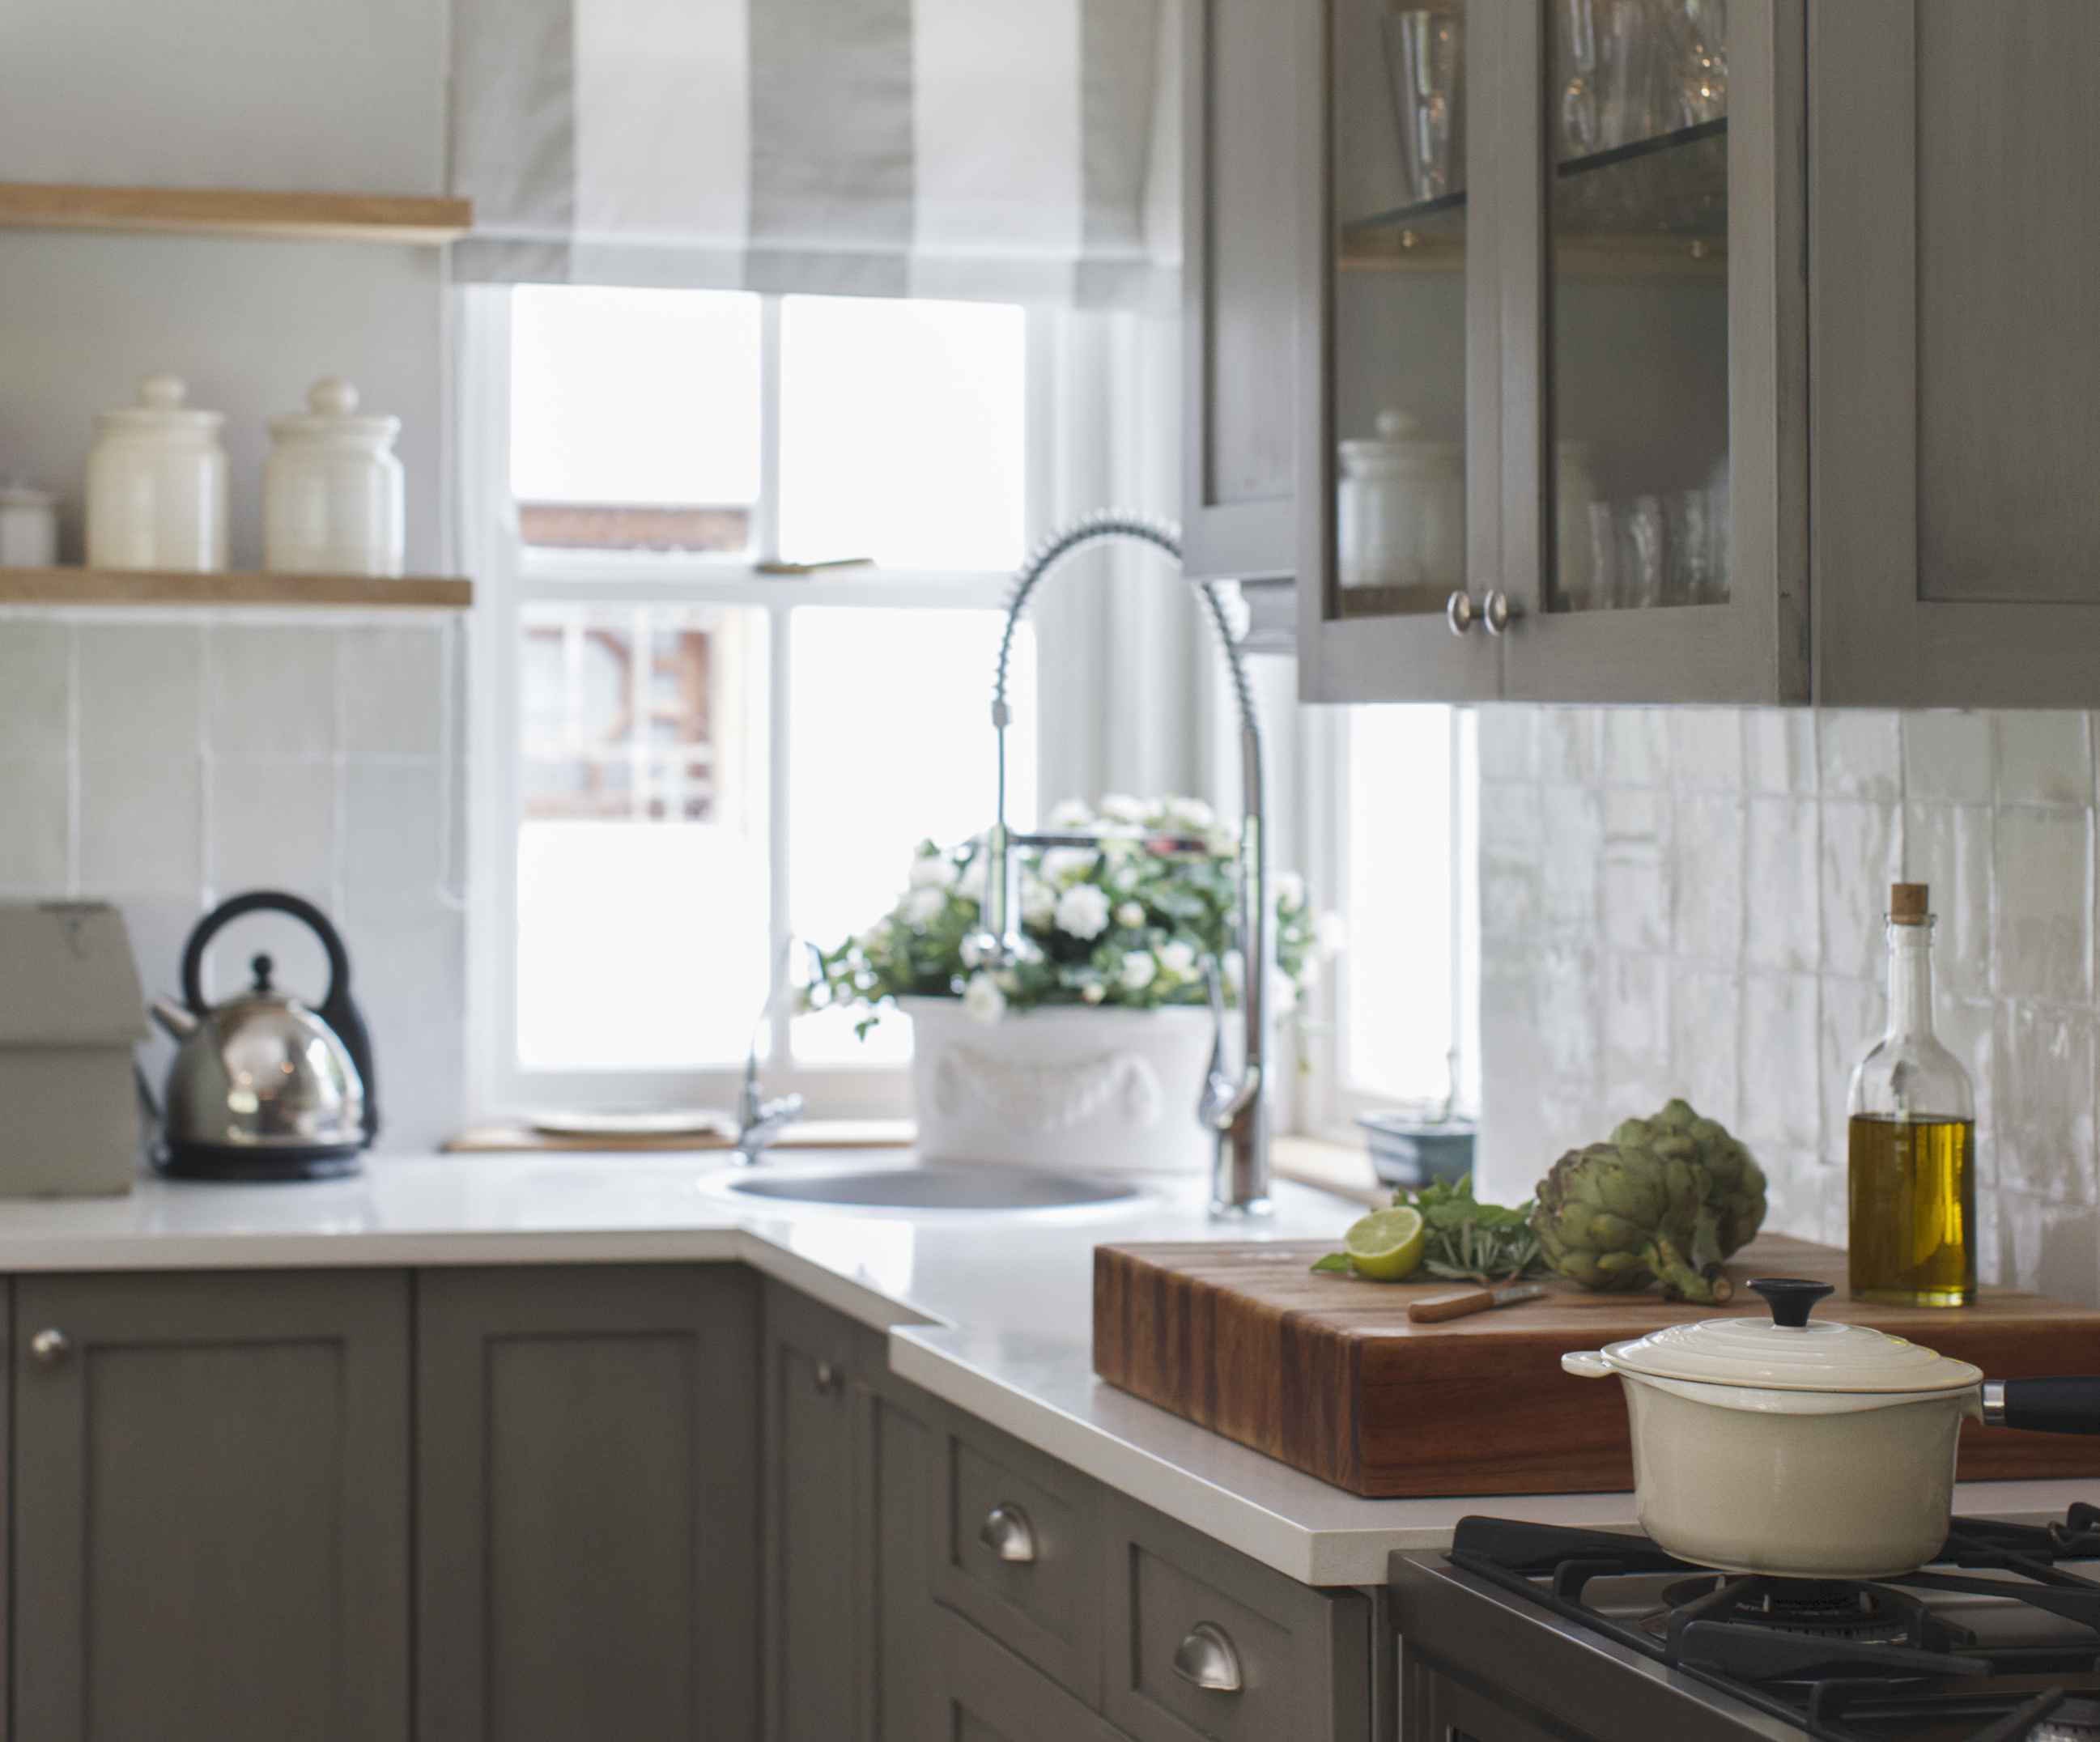 How to Feng Shui Your Kitchen - Adelaide Kitchens